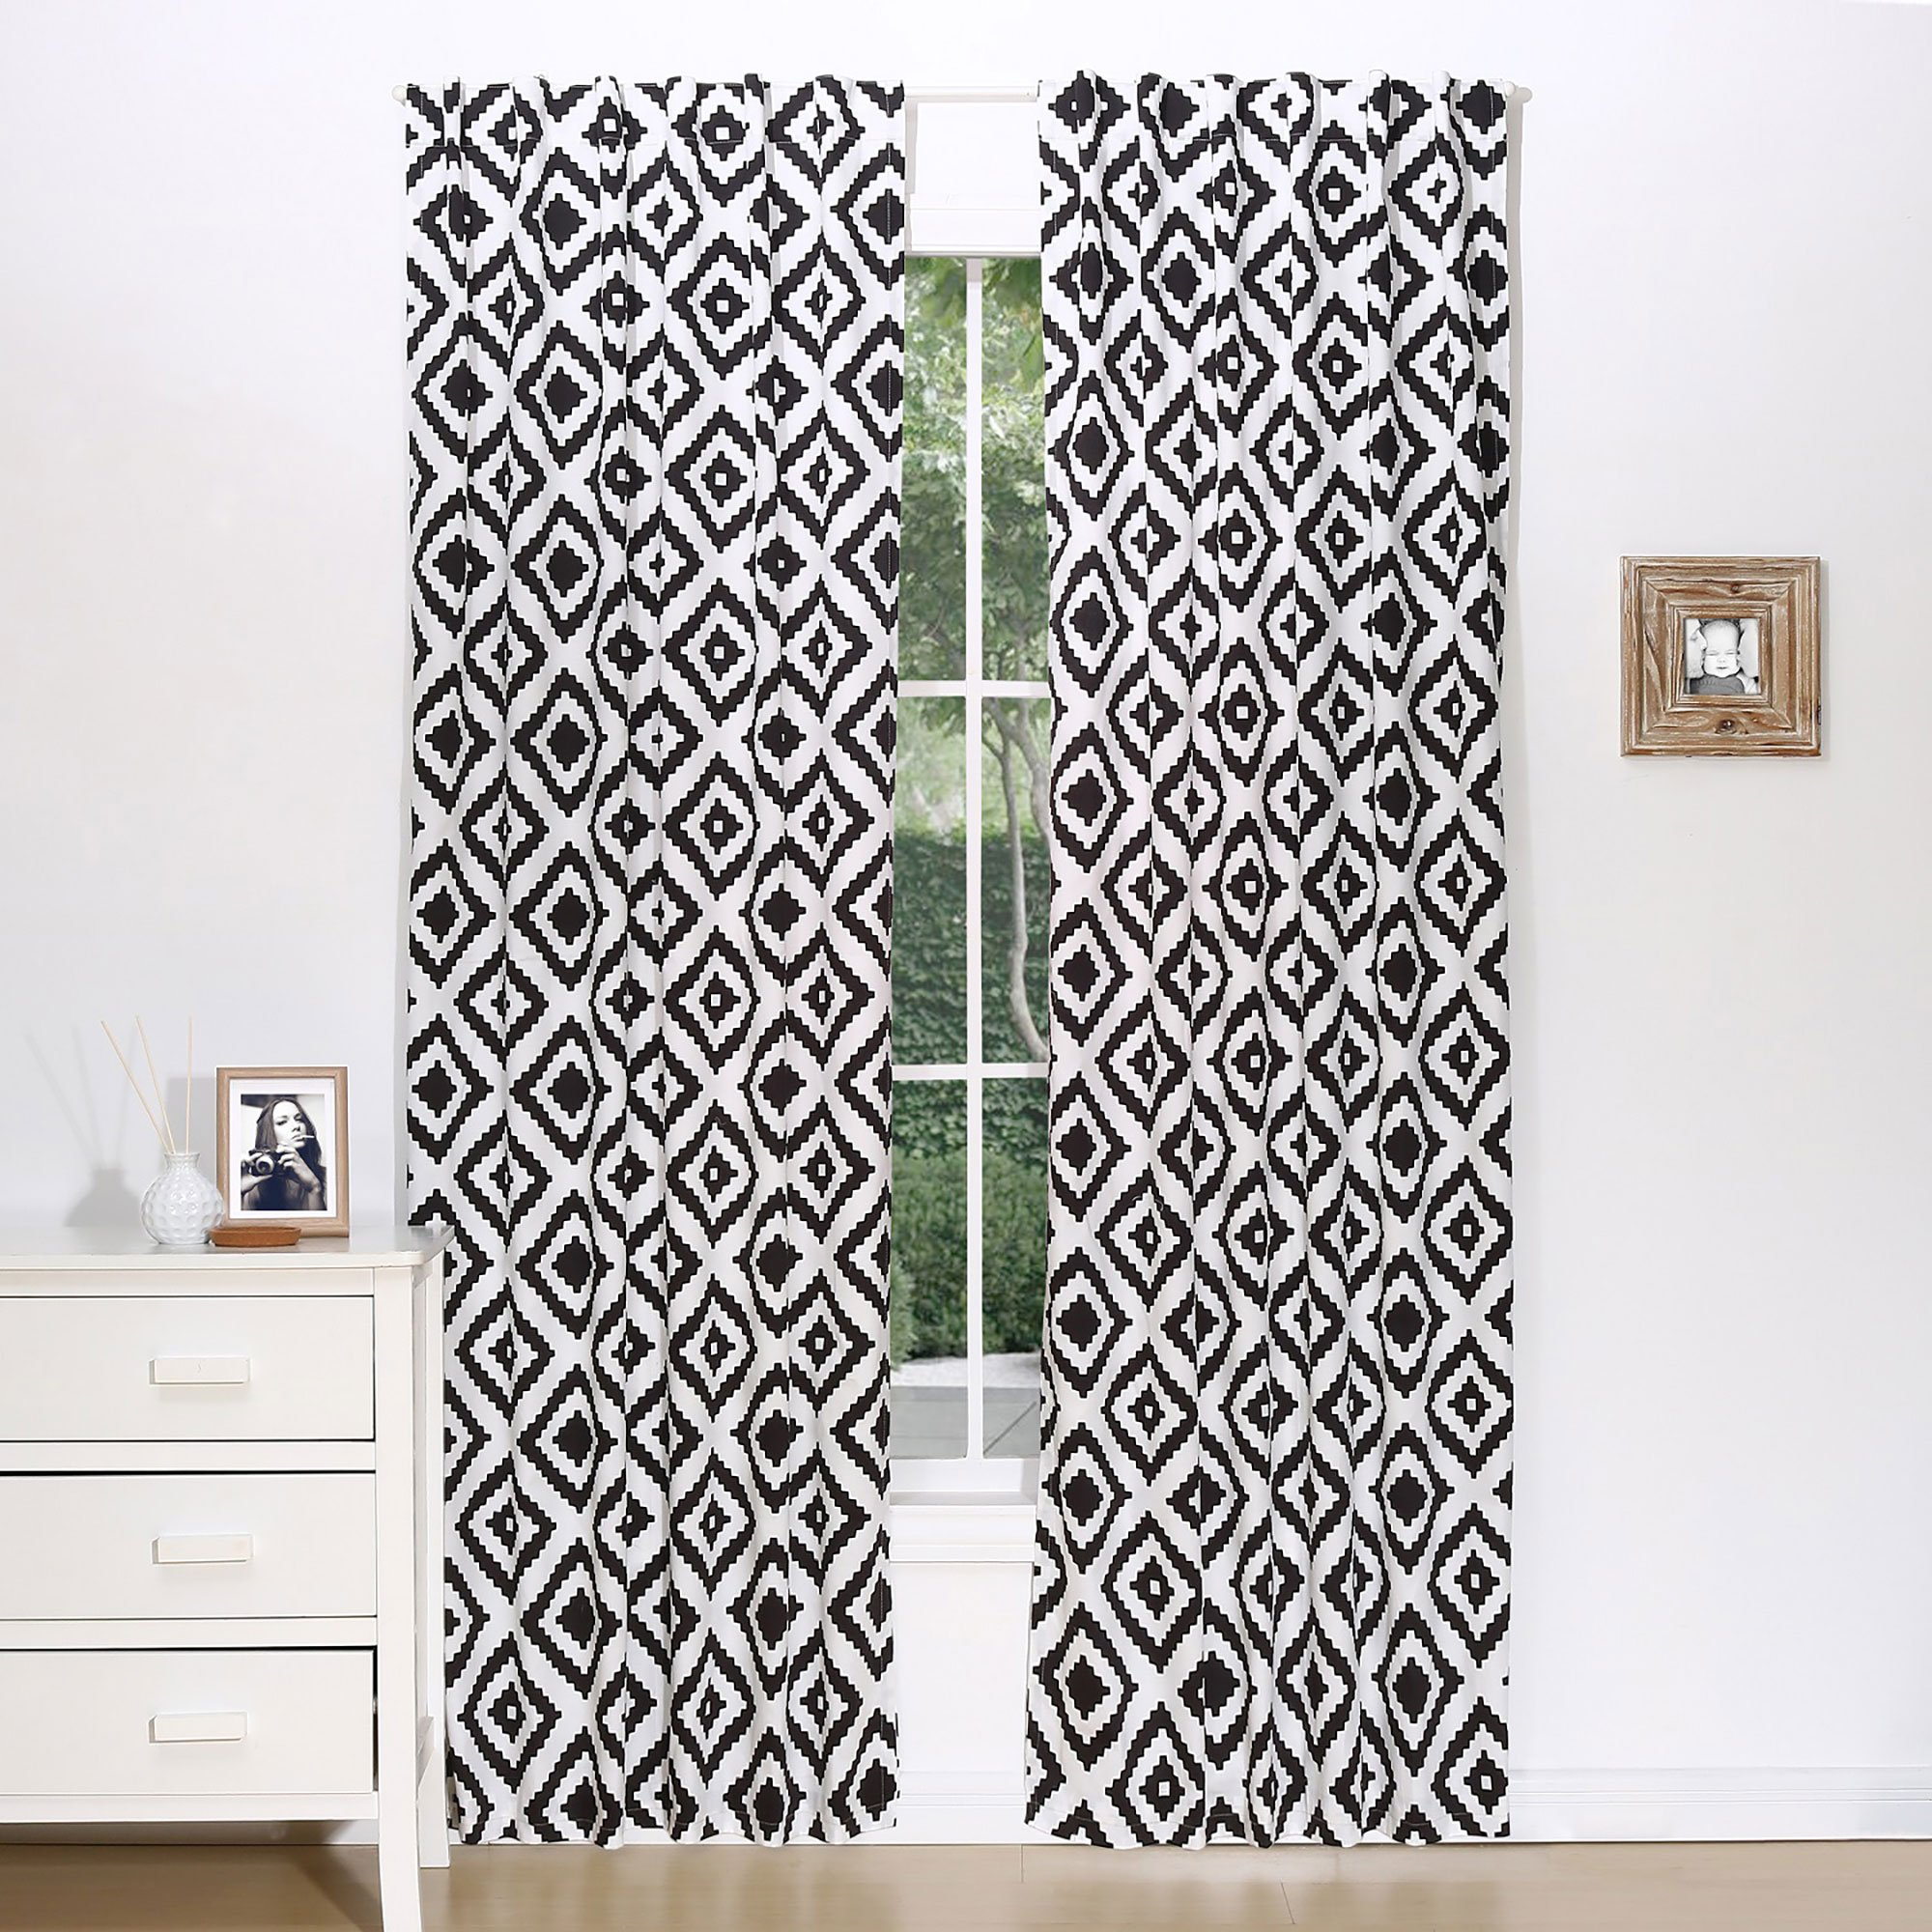 Black Diamond Tile Print Window Drapery Panels - Set of Two 84 by 42 Inch Panels